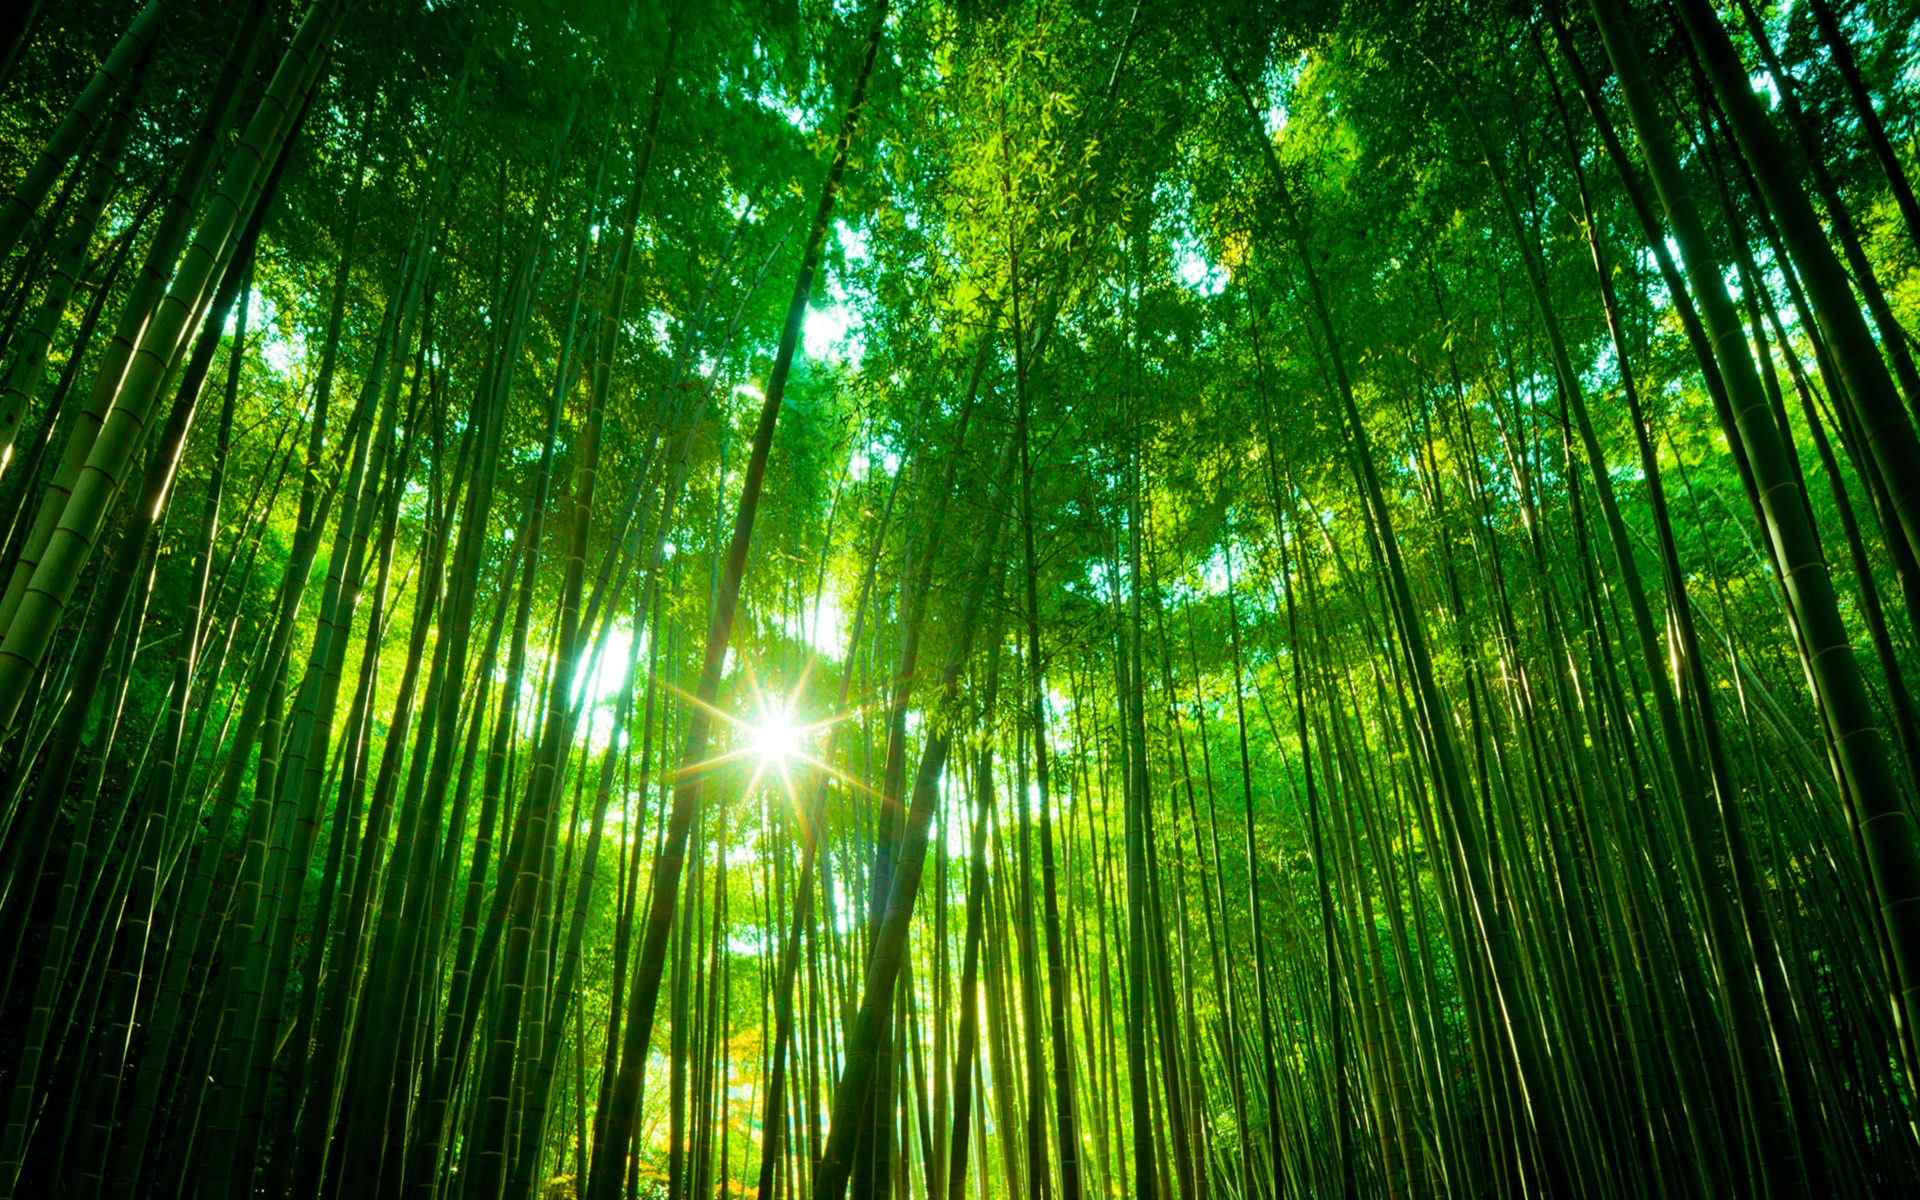 Bamboo Wallpaper Hd images in Collection Page